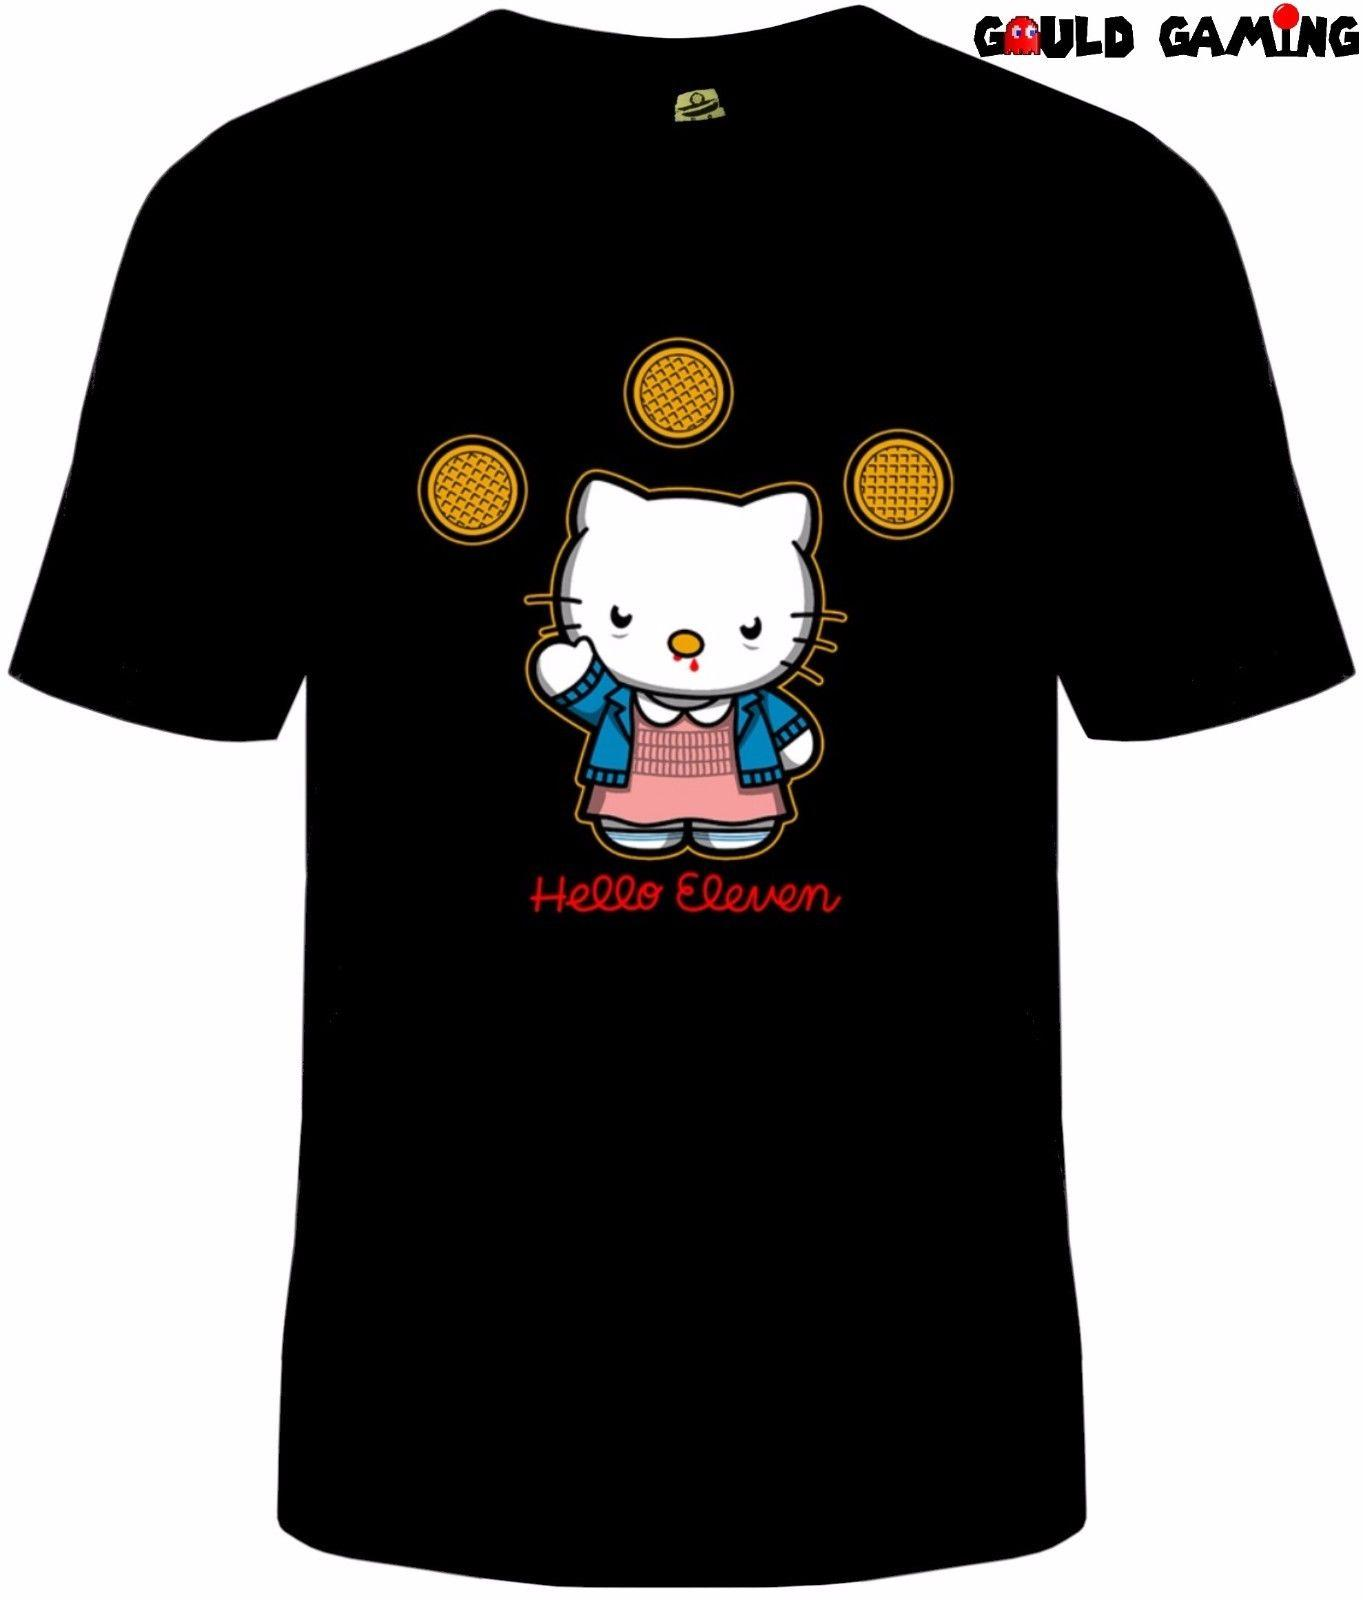 ce06f81f9 Stranger Things Hello Kitty T Shirt Unisex Cotton Adult Sizes Eleven Eggo  New Reasonable Wholesale T Shirt Top Tee Fun Shirt Designs For T Shirts  From ...